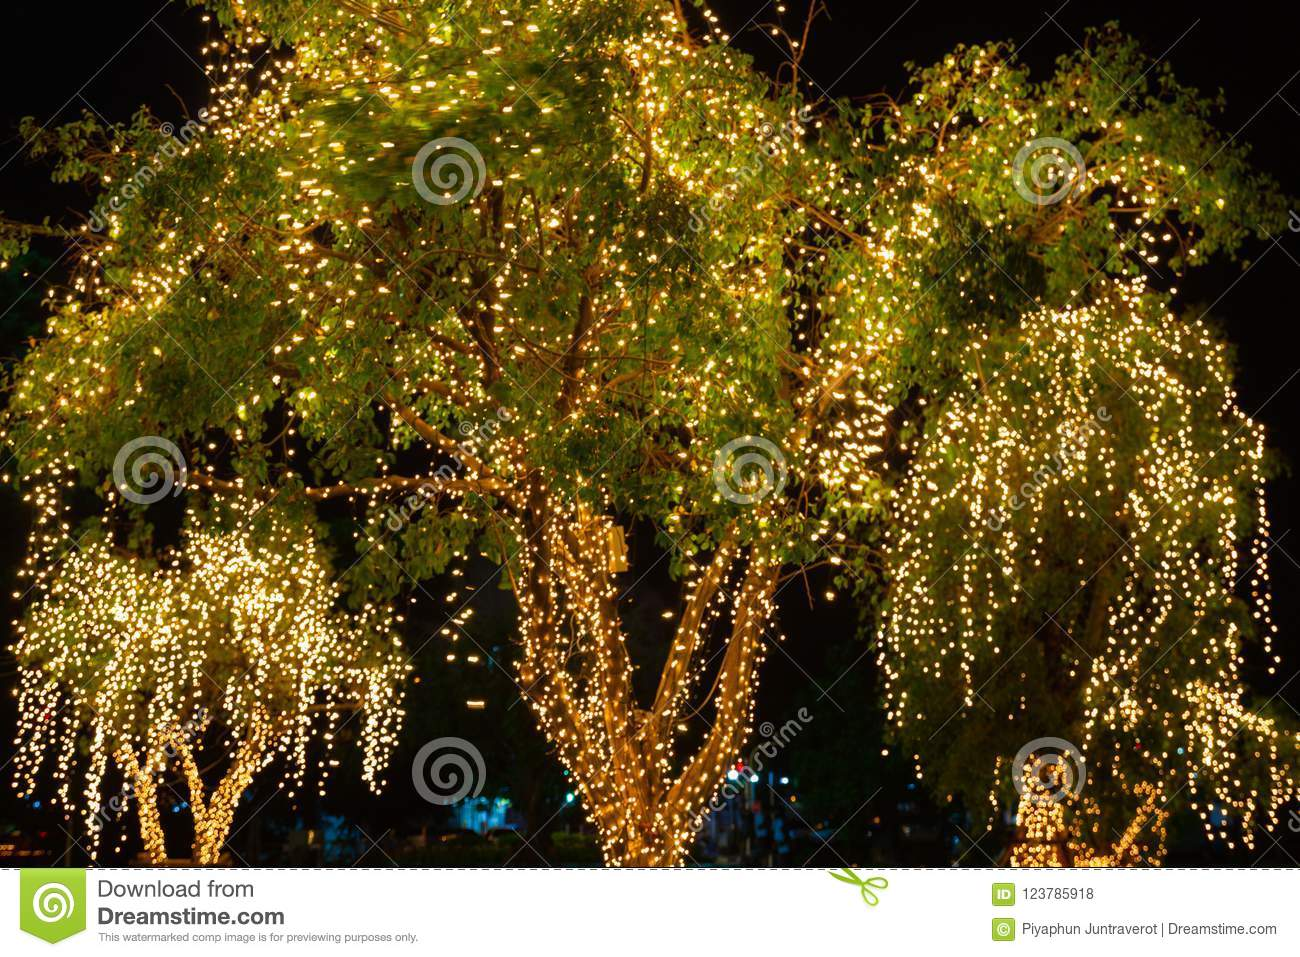 blur bokeh decorative outdoor string lights hanging on tree in the garden at night time decorative christmas lights happy new year - How To Put Christmas Lights On Tree